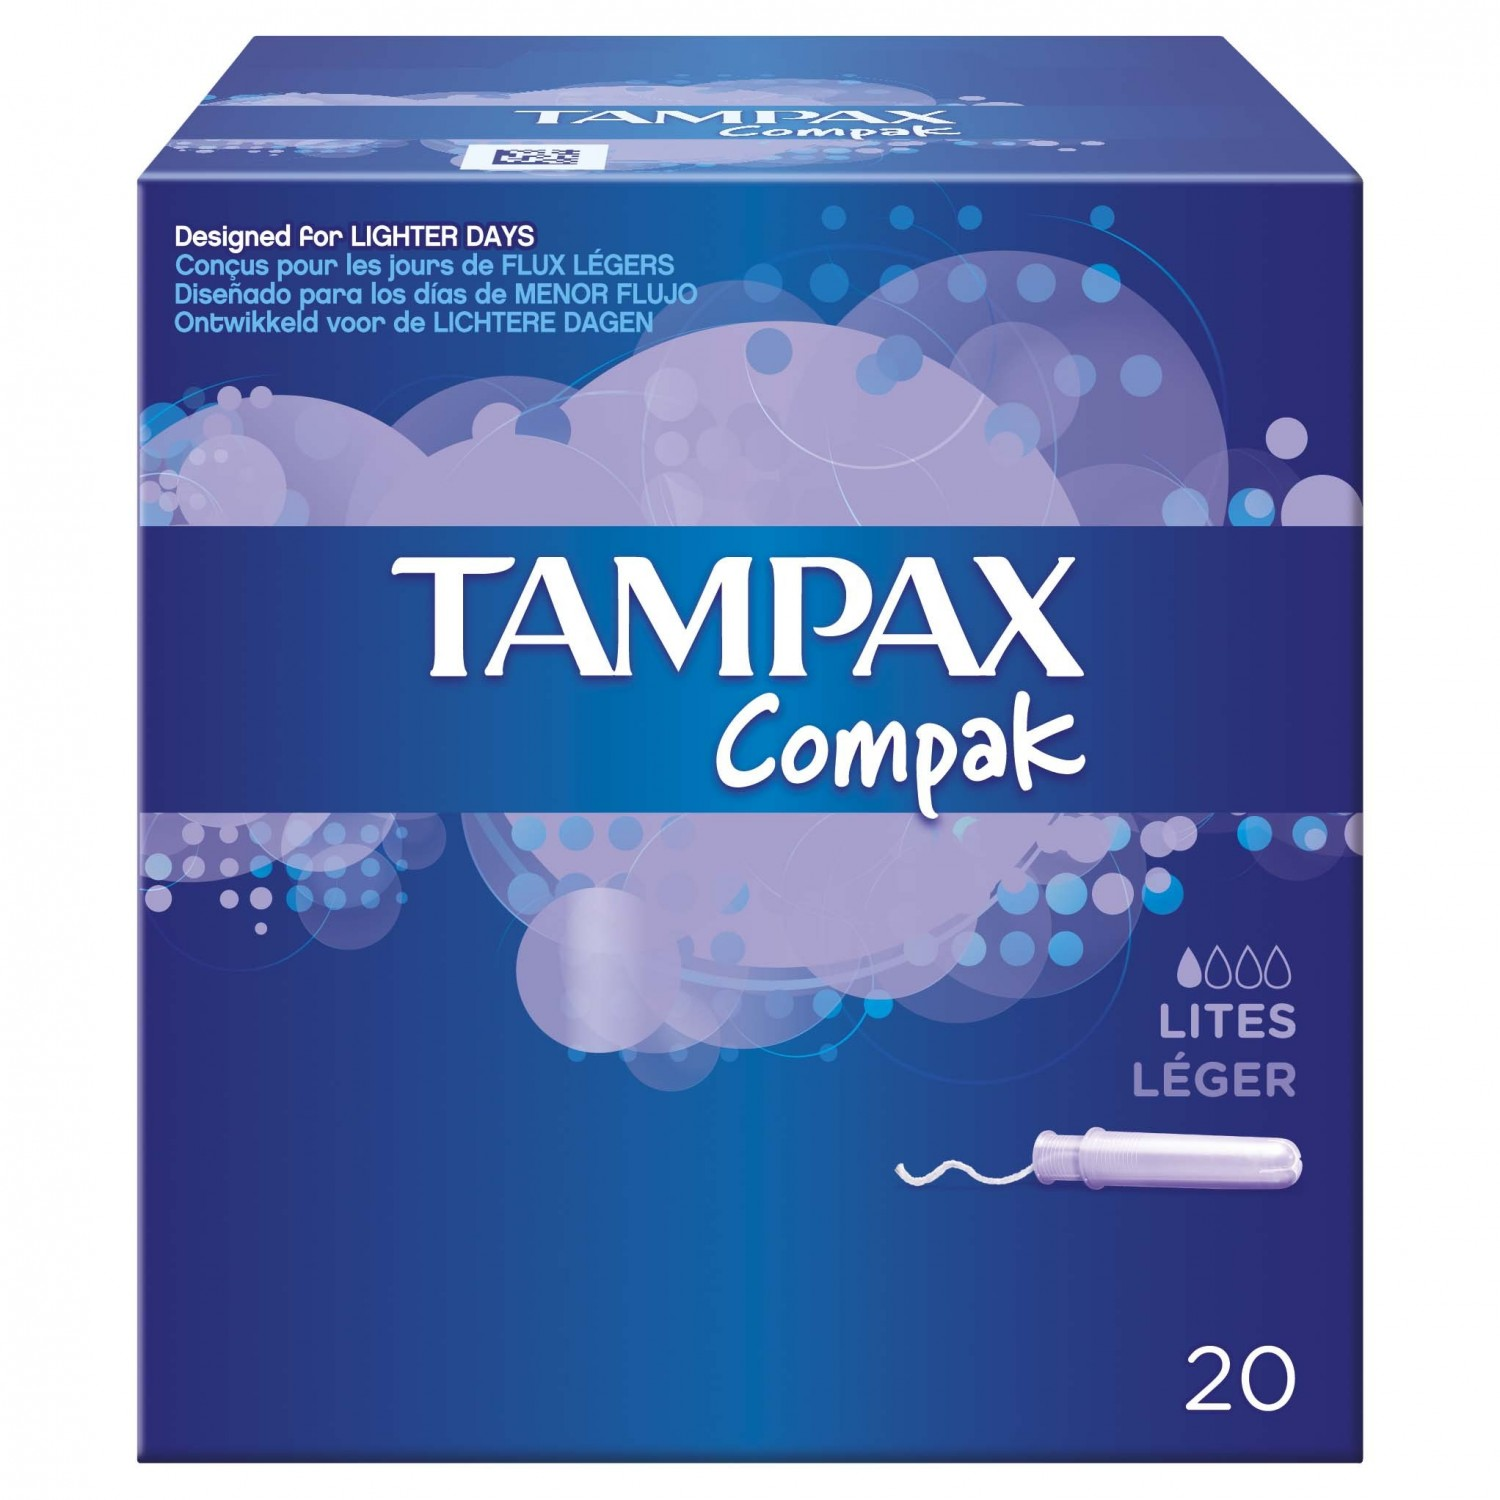 Tampax tampon lite compack 20 en paquete